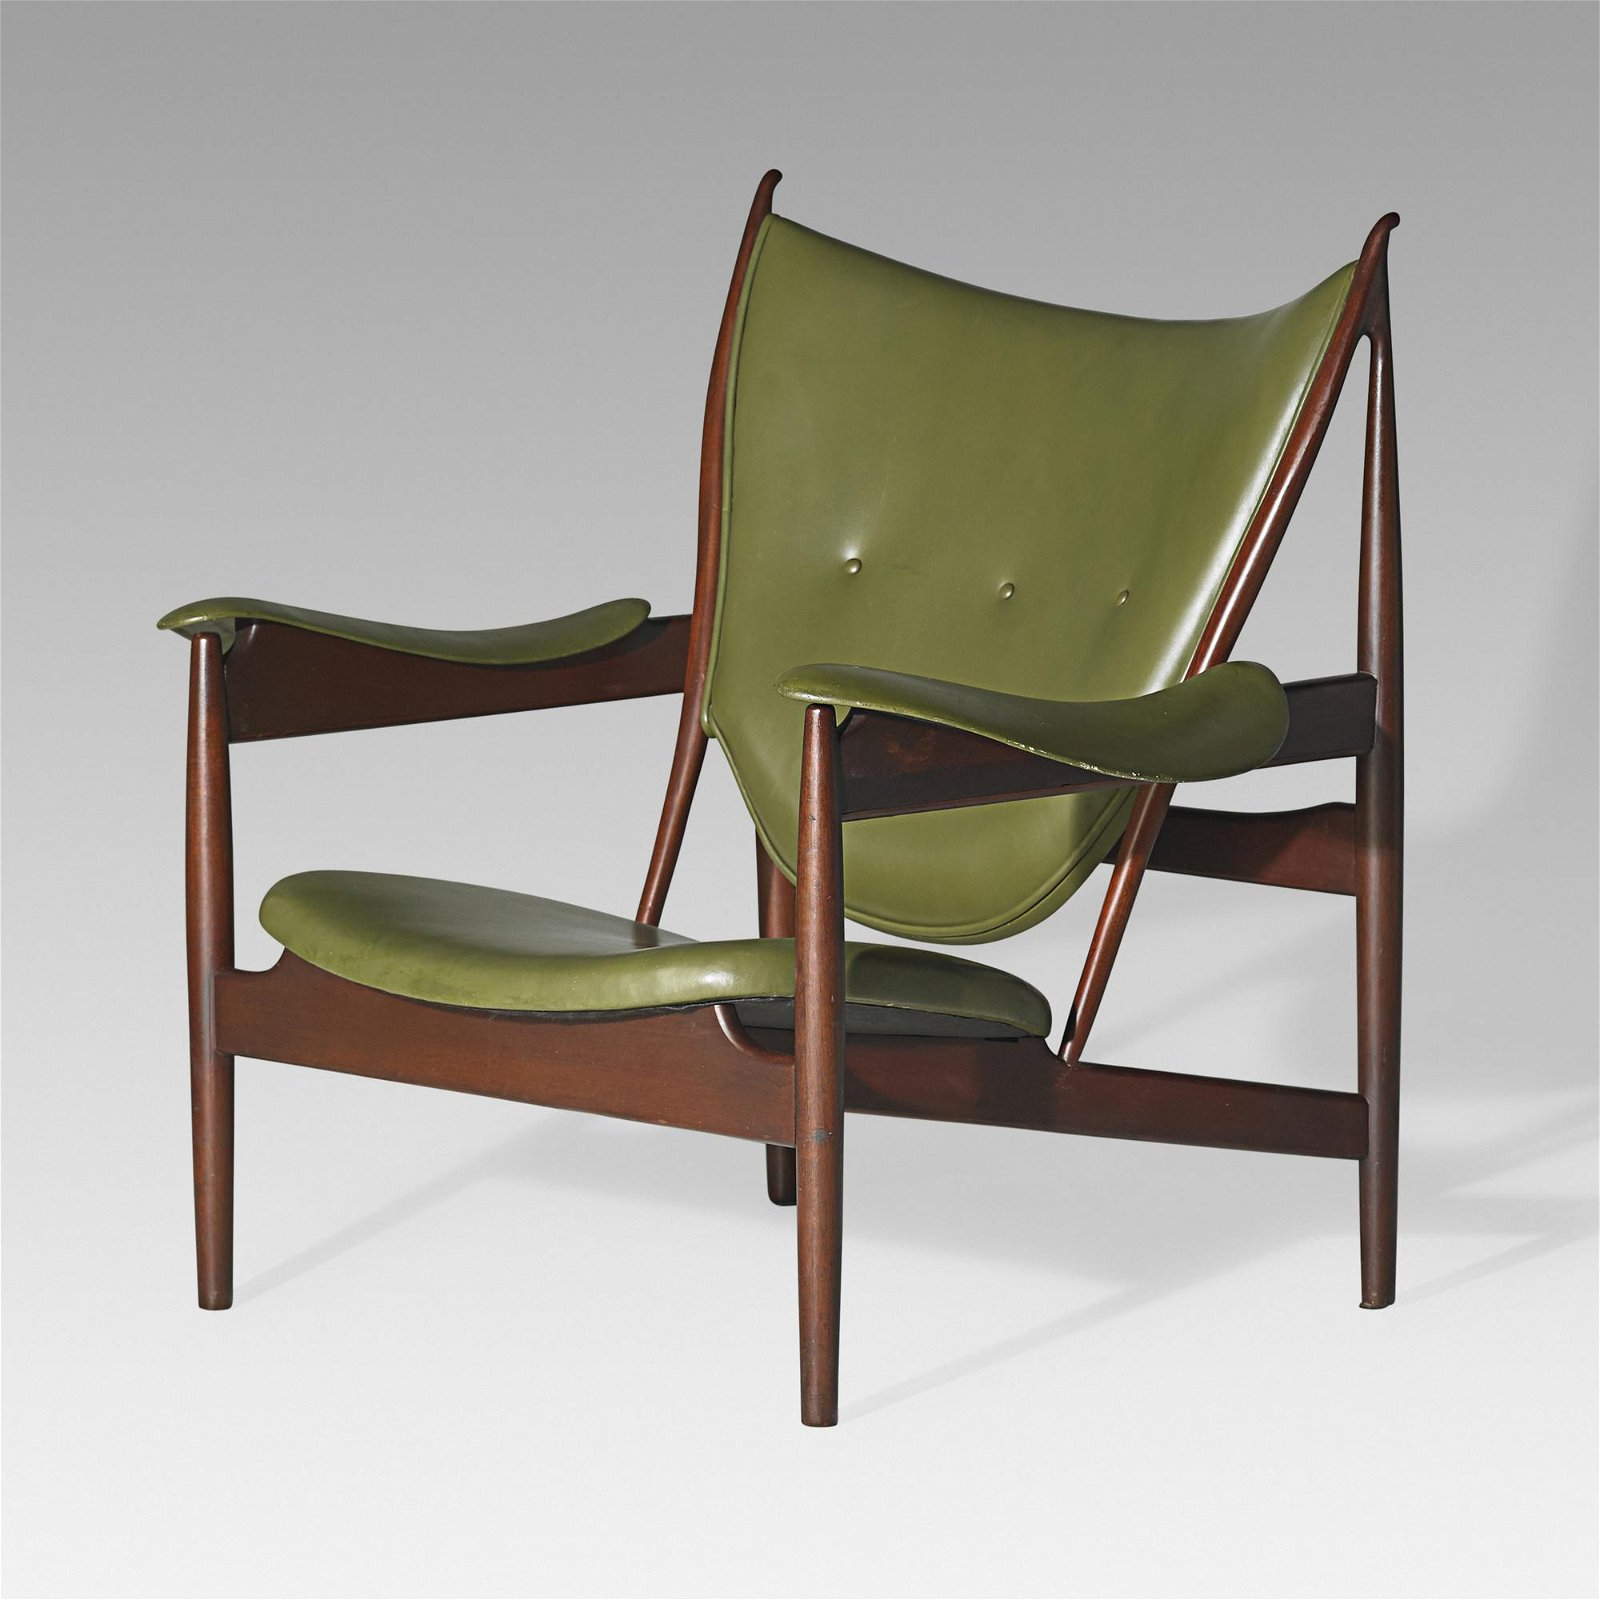 After Finn Juhl, armchair